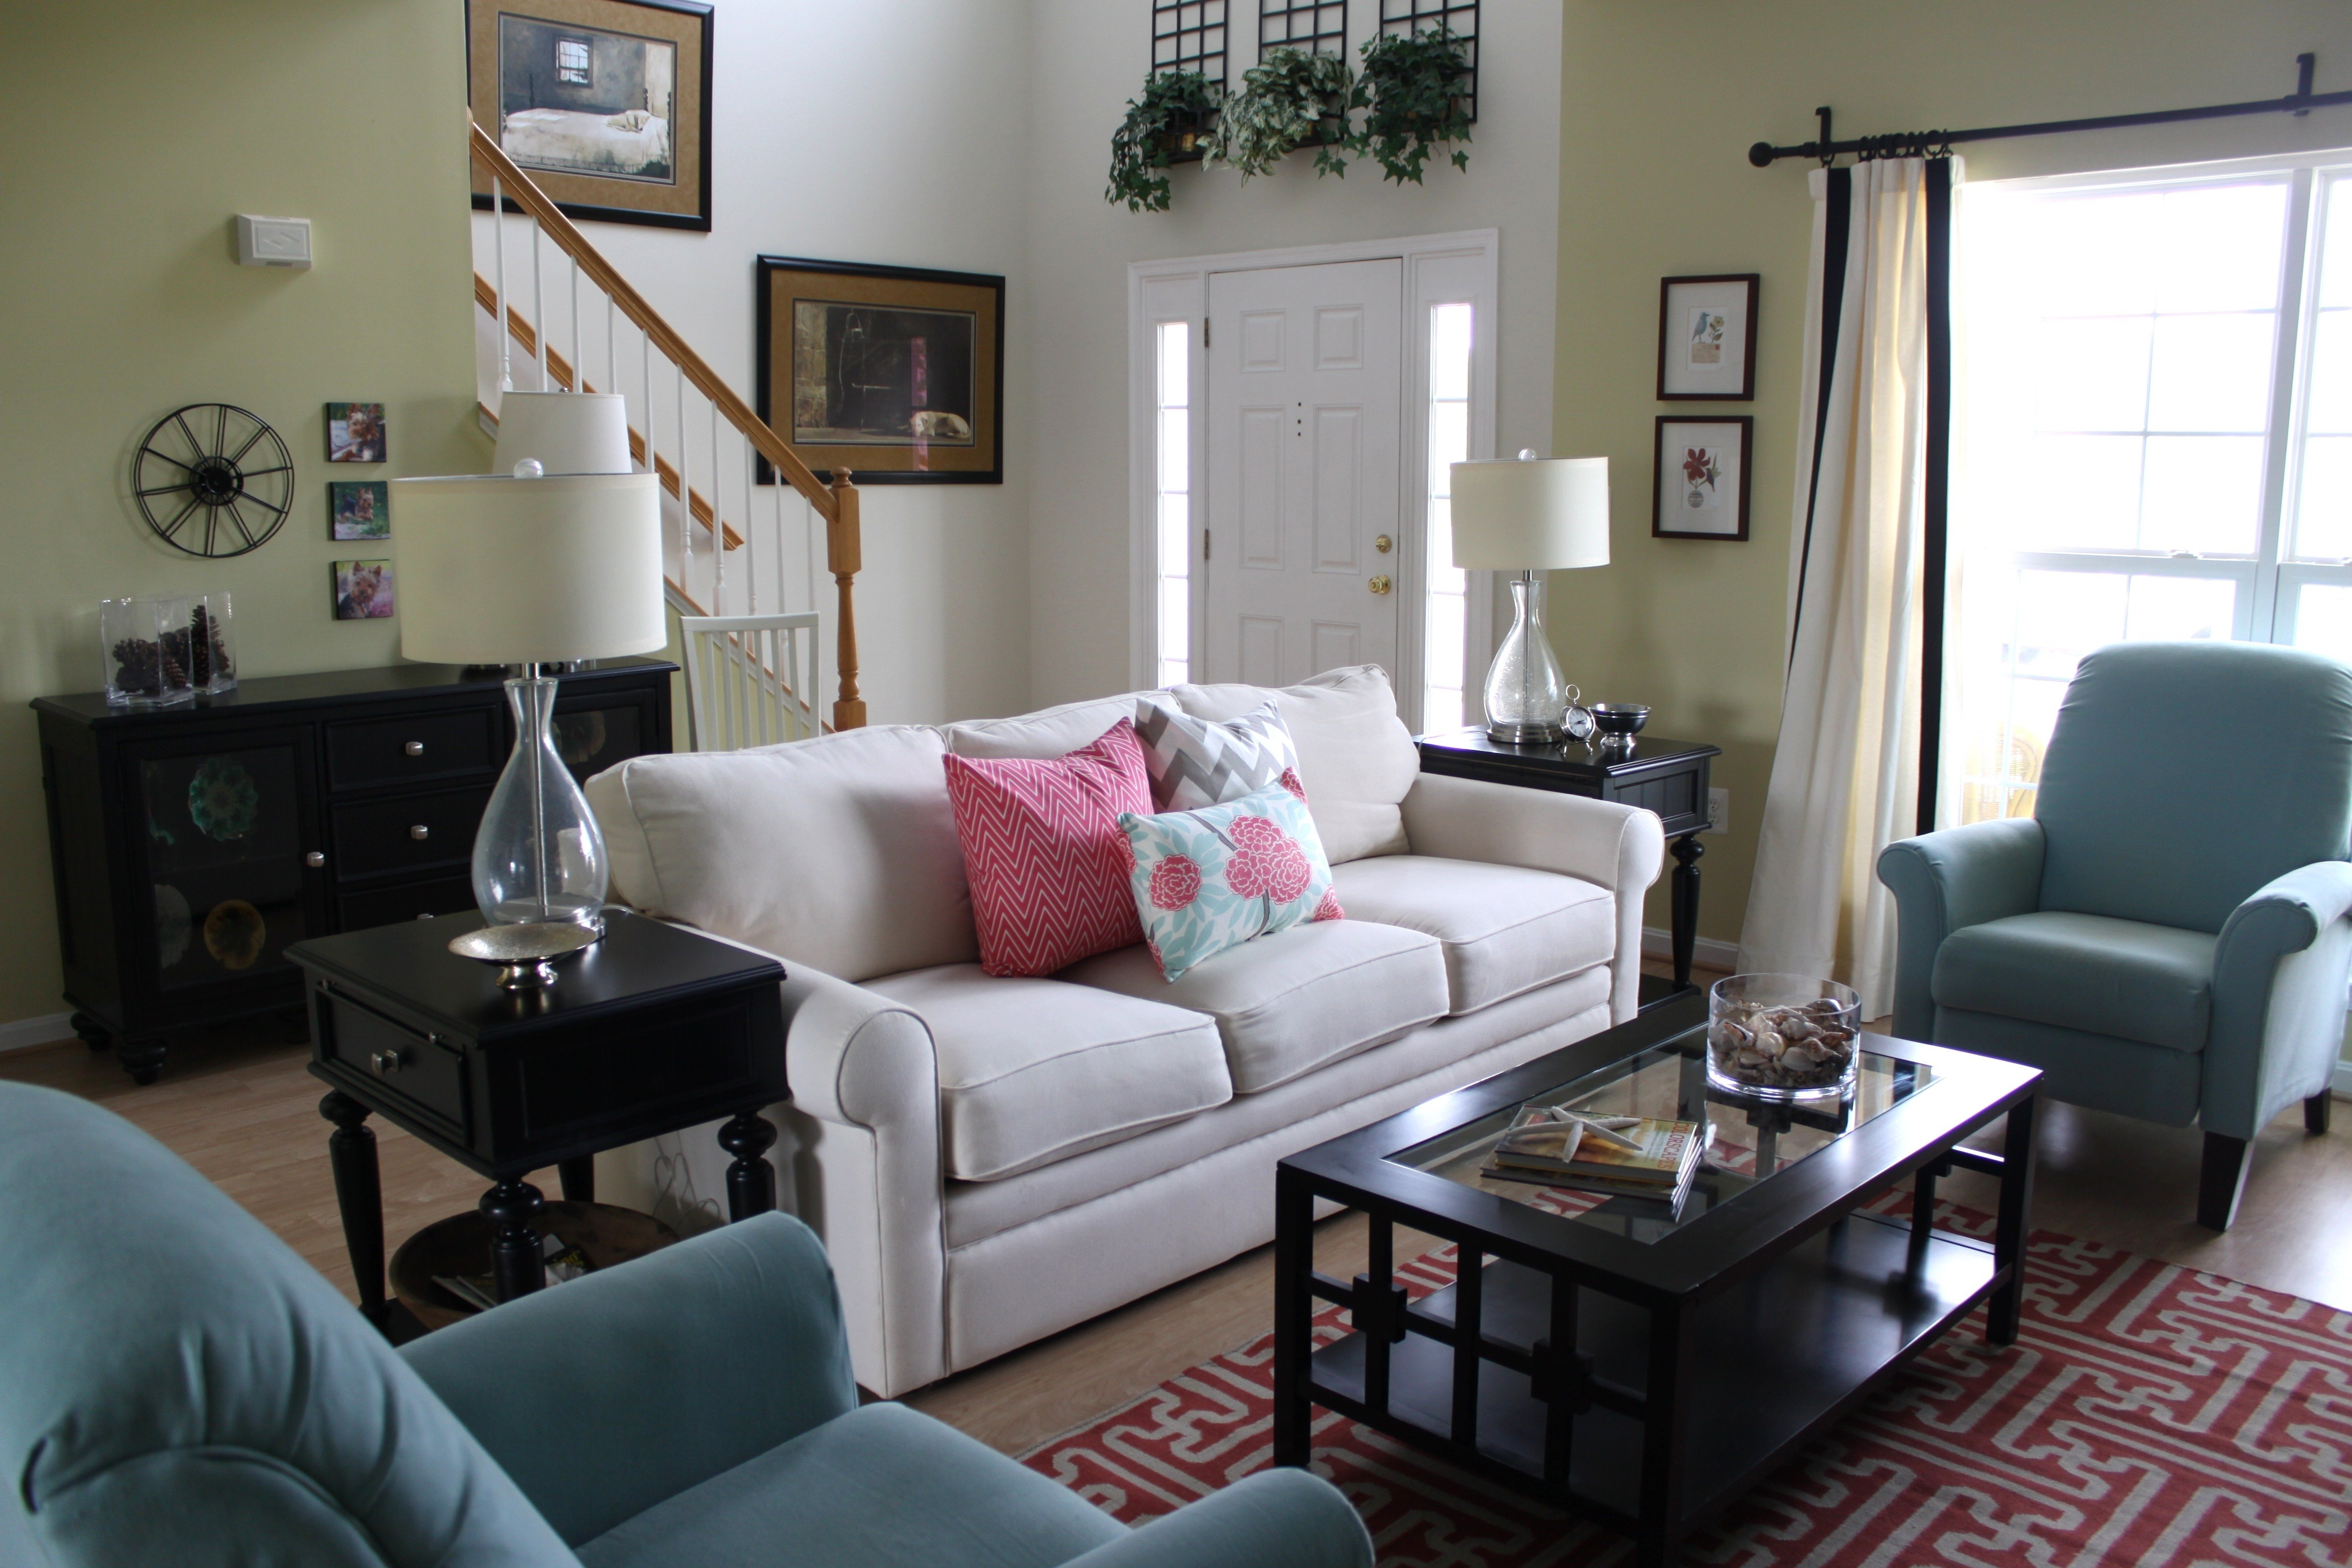 10 Lovely Living Room Decorating Ideas On A Budget living room decorating apartment design ideas on a budget with tv 2020